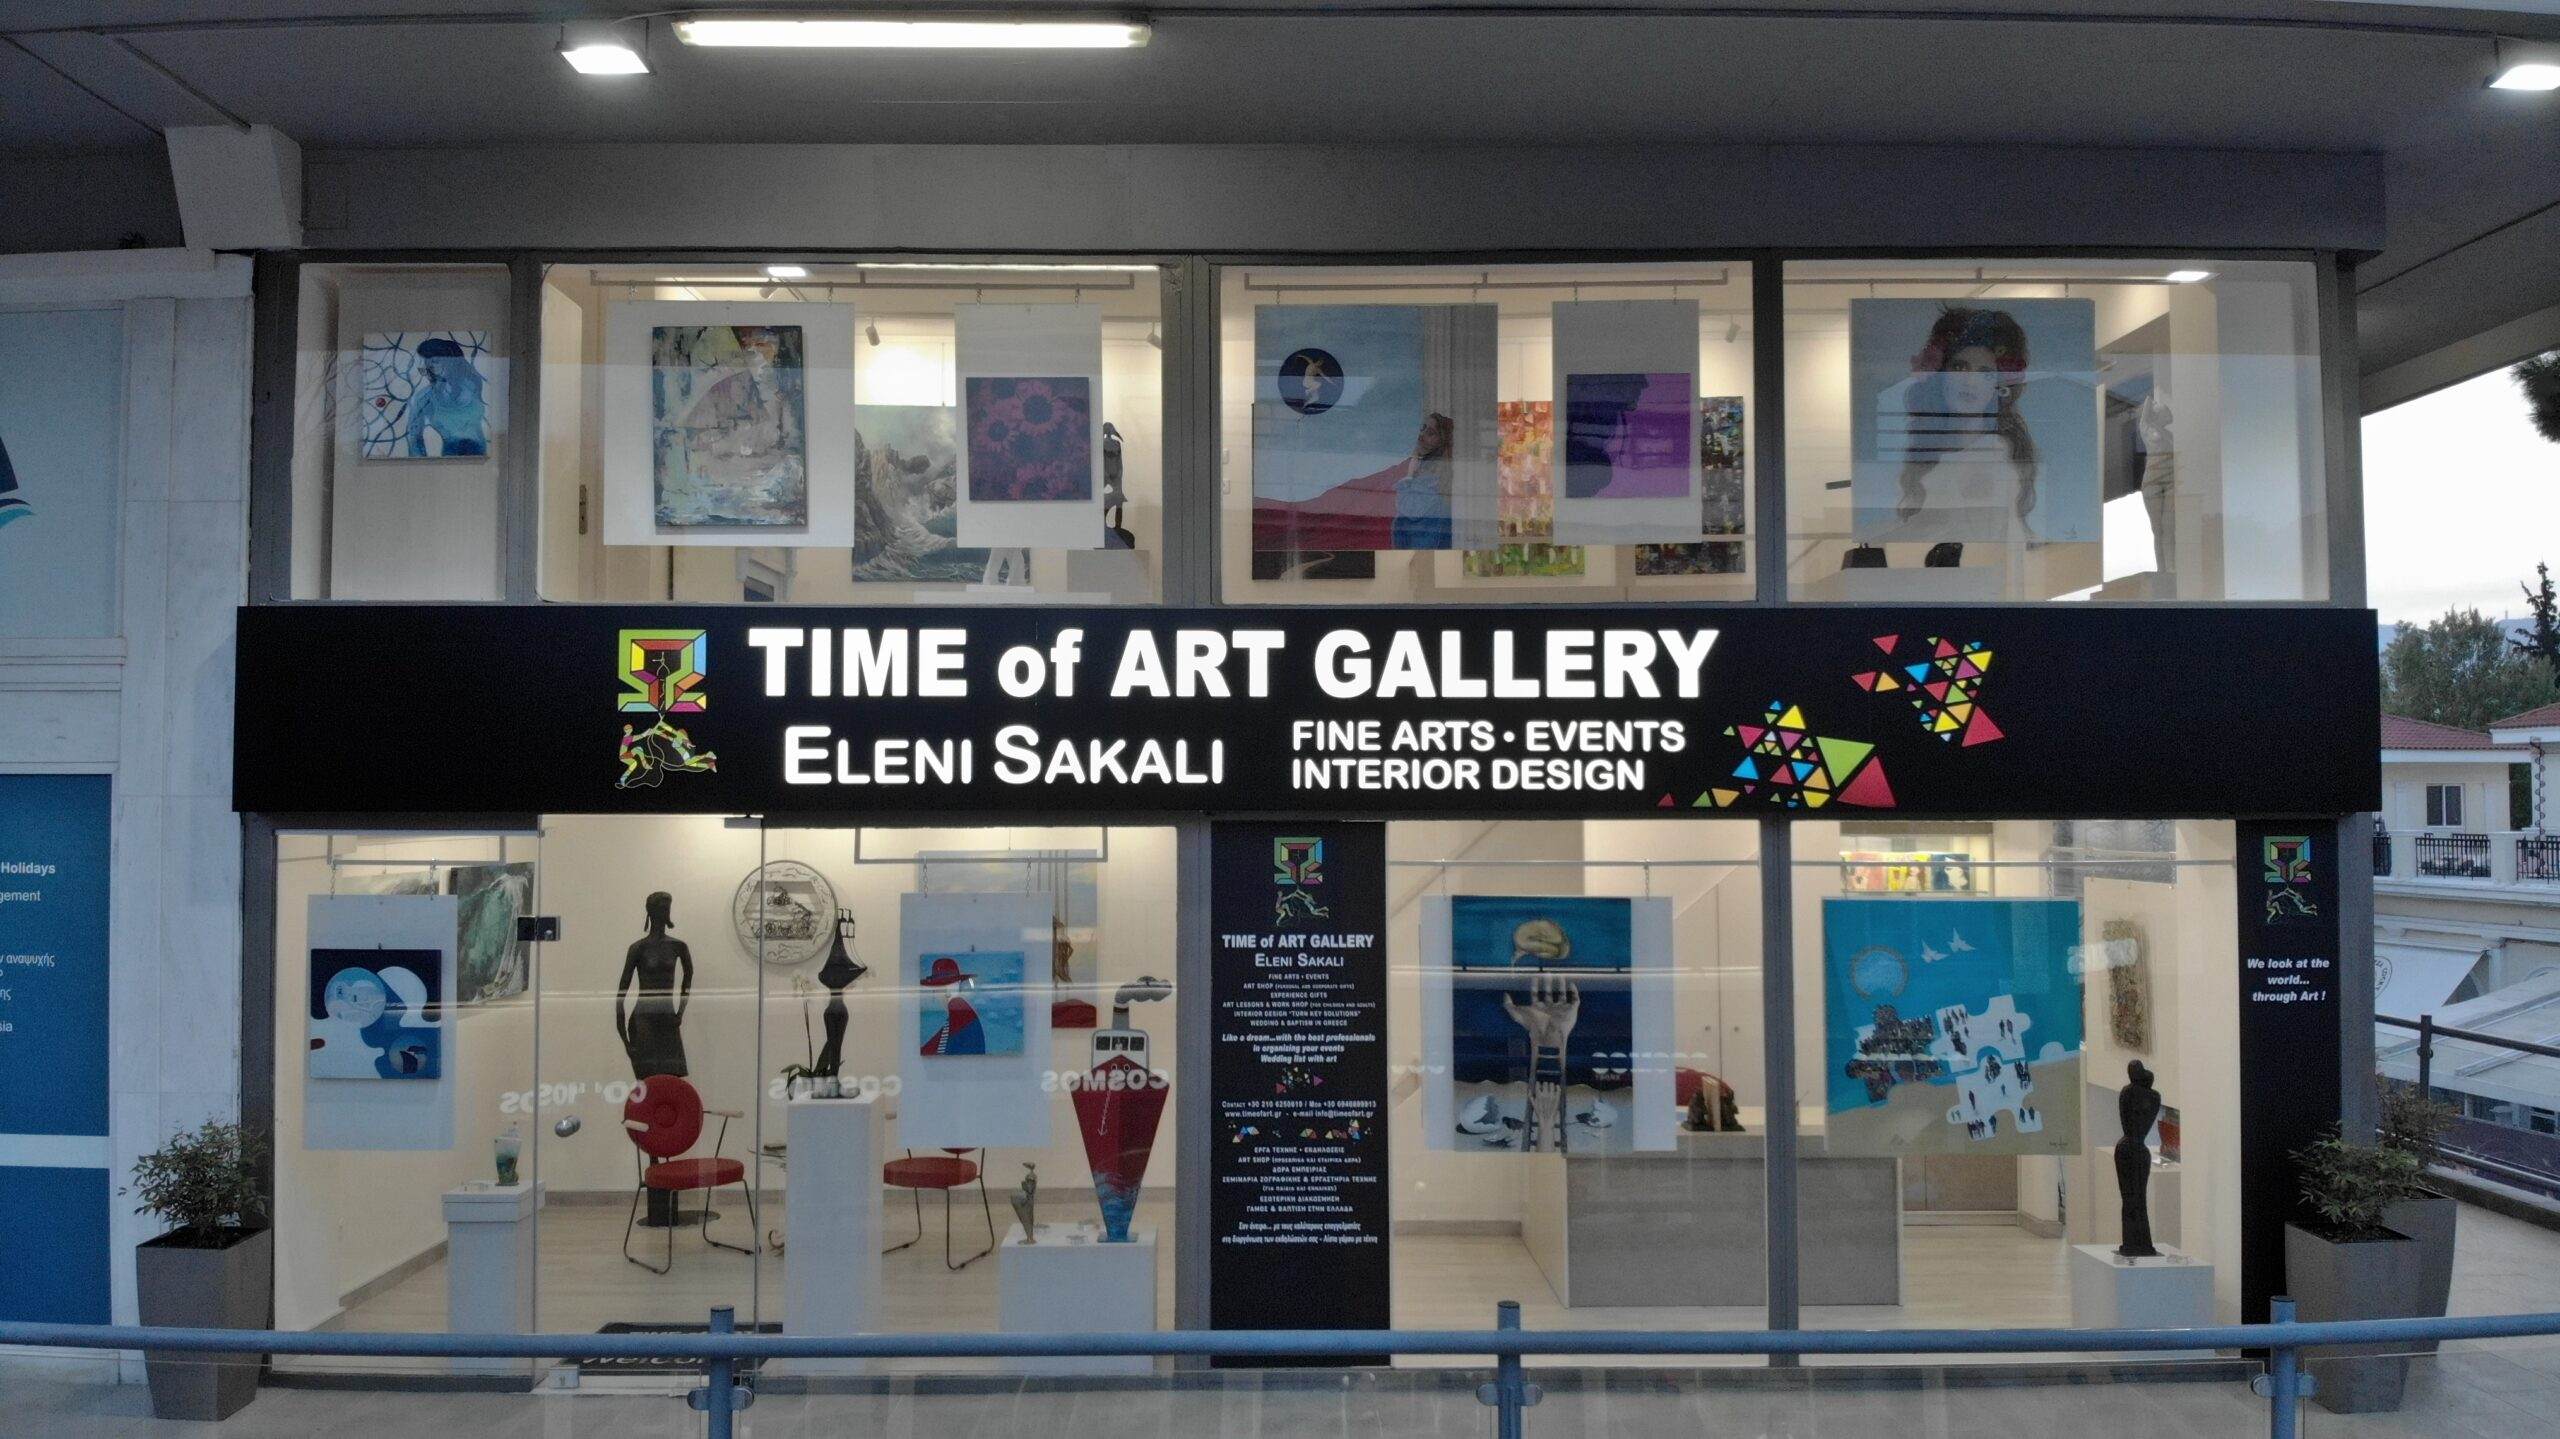 Time of Art Gallery